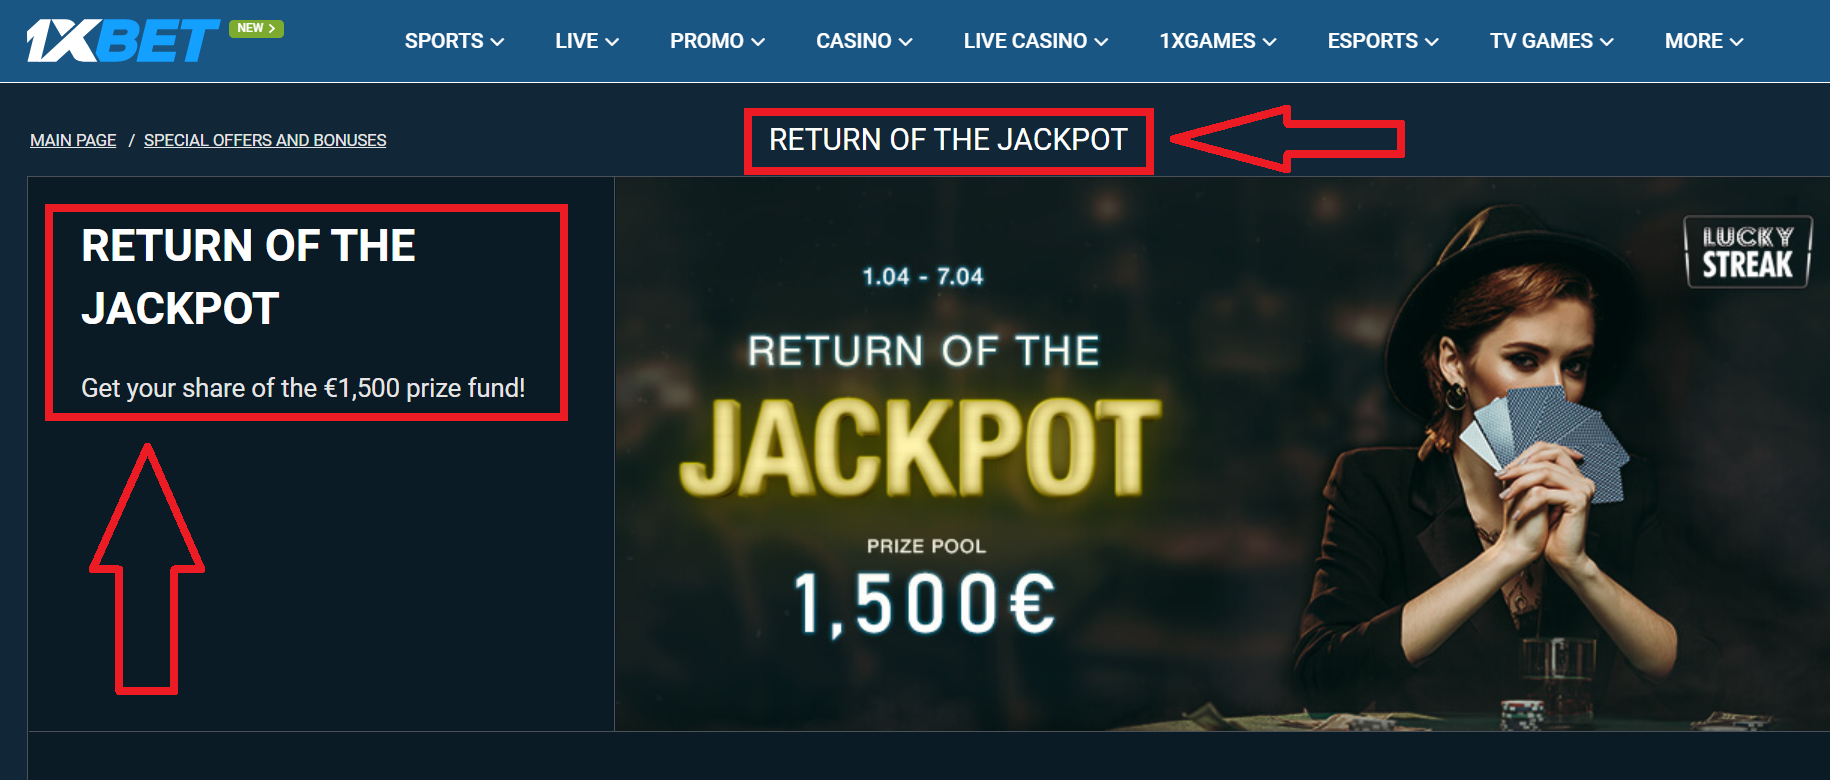 How to use a bonus code on the 1xBet site